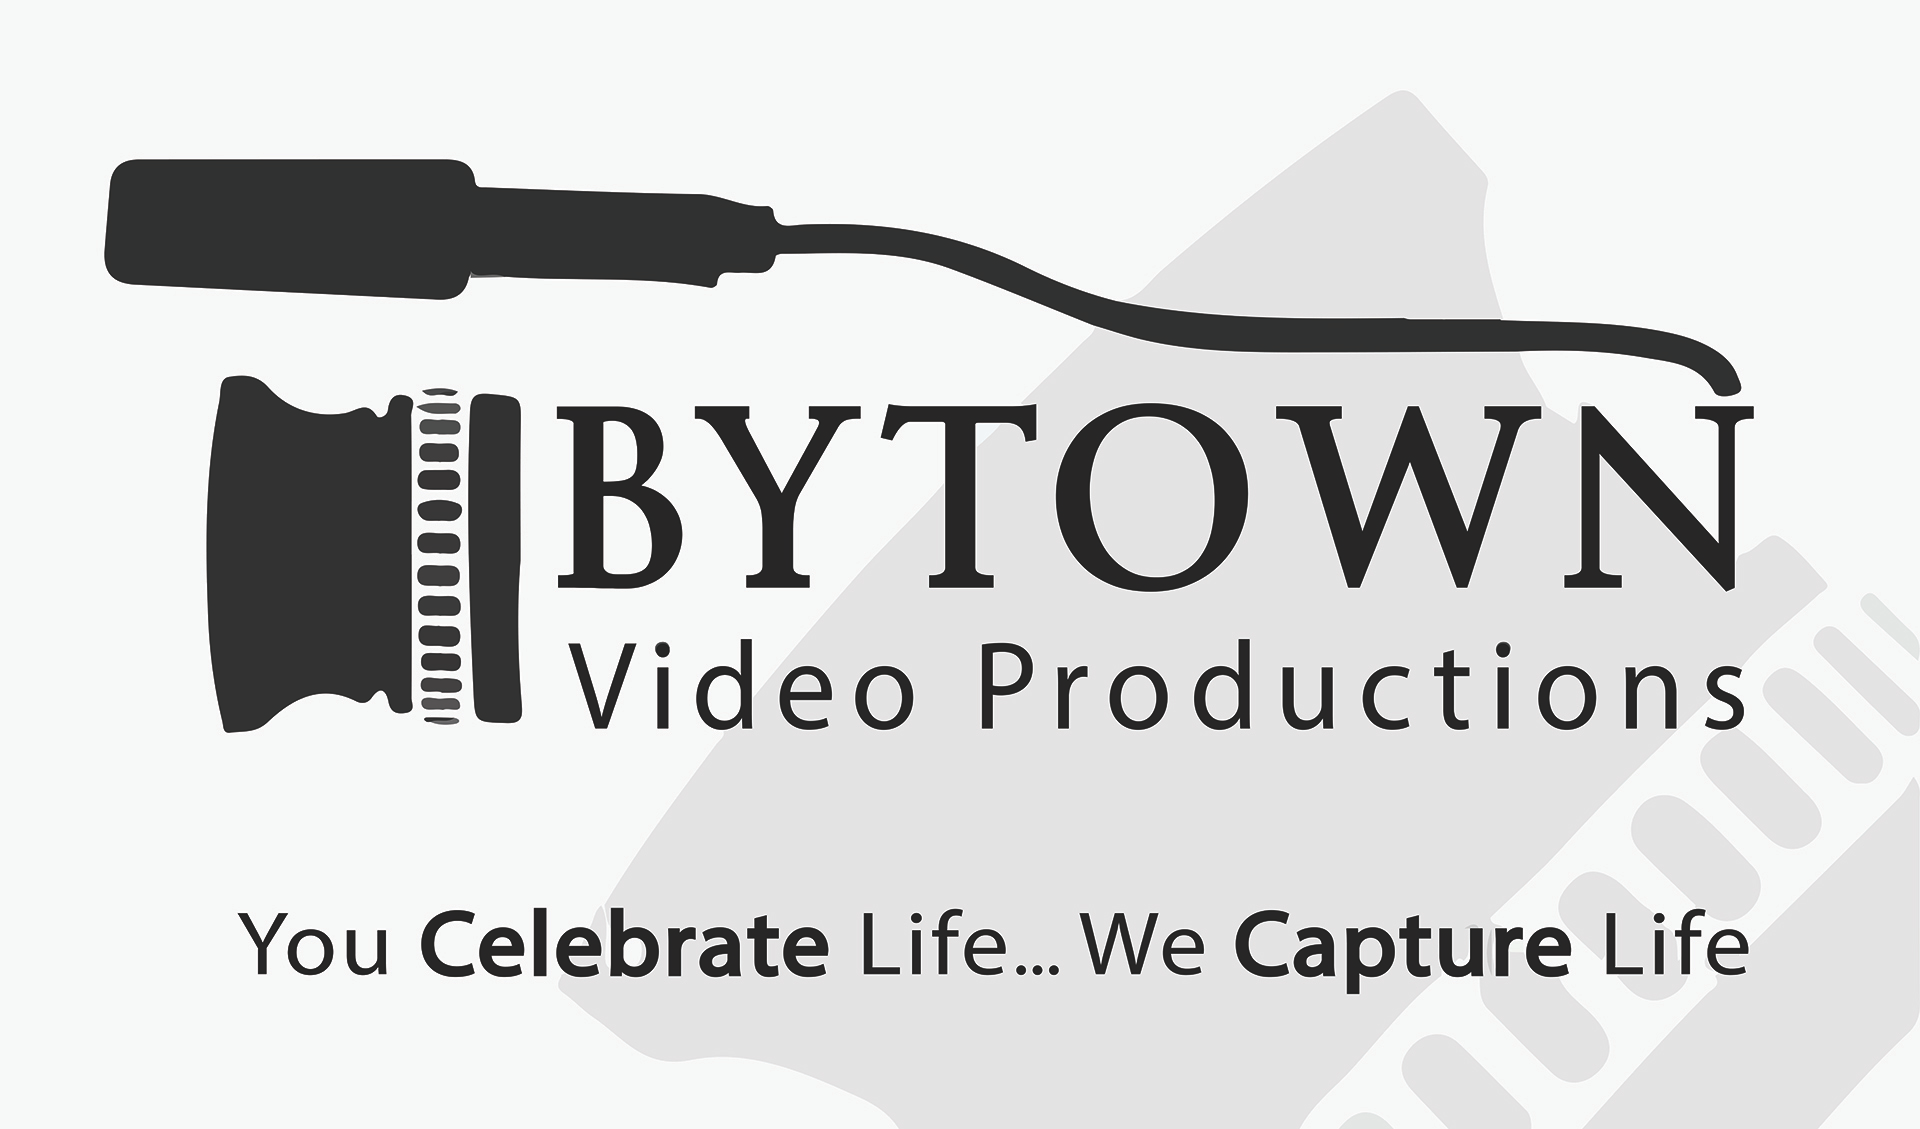 Bytown Video Productions is an eSAX sponsor